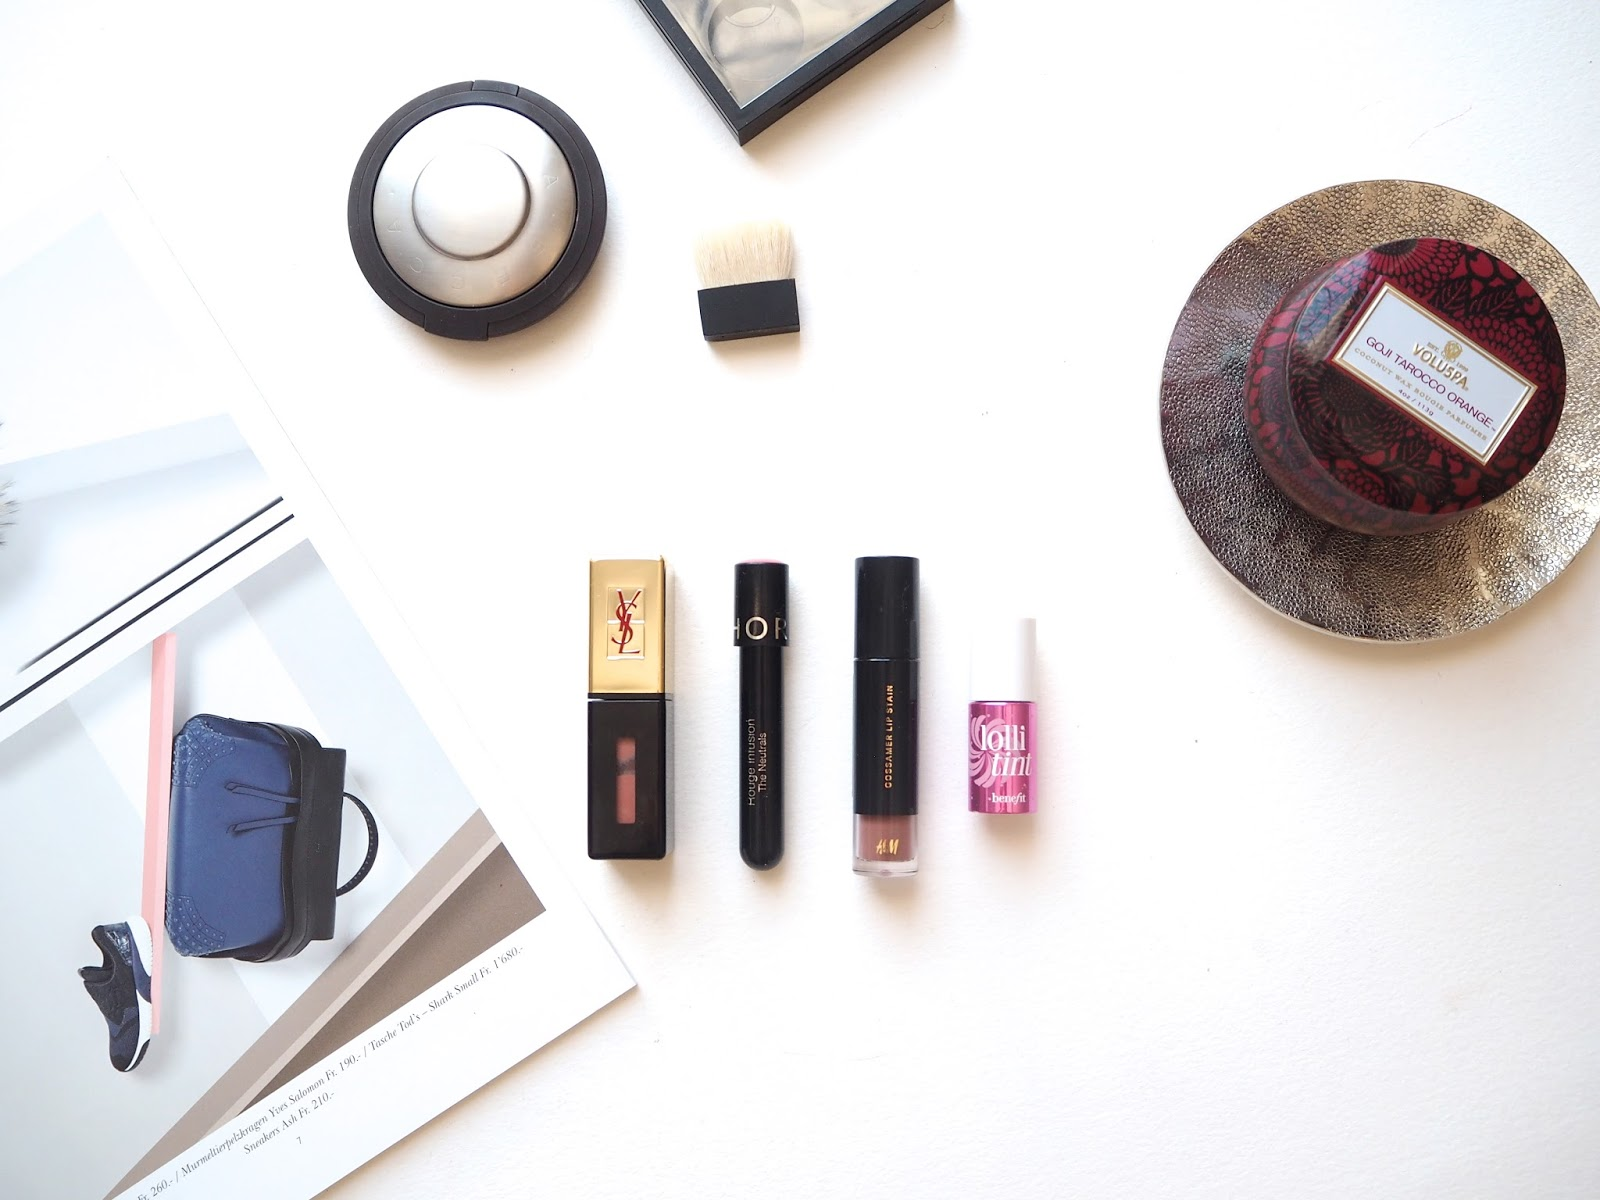 Best Lip Stains, YSL glossy stain, Sephora rouge infusion, hm beauty gossamer lip stain, benefit lollitint, swatches